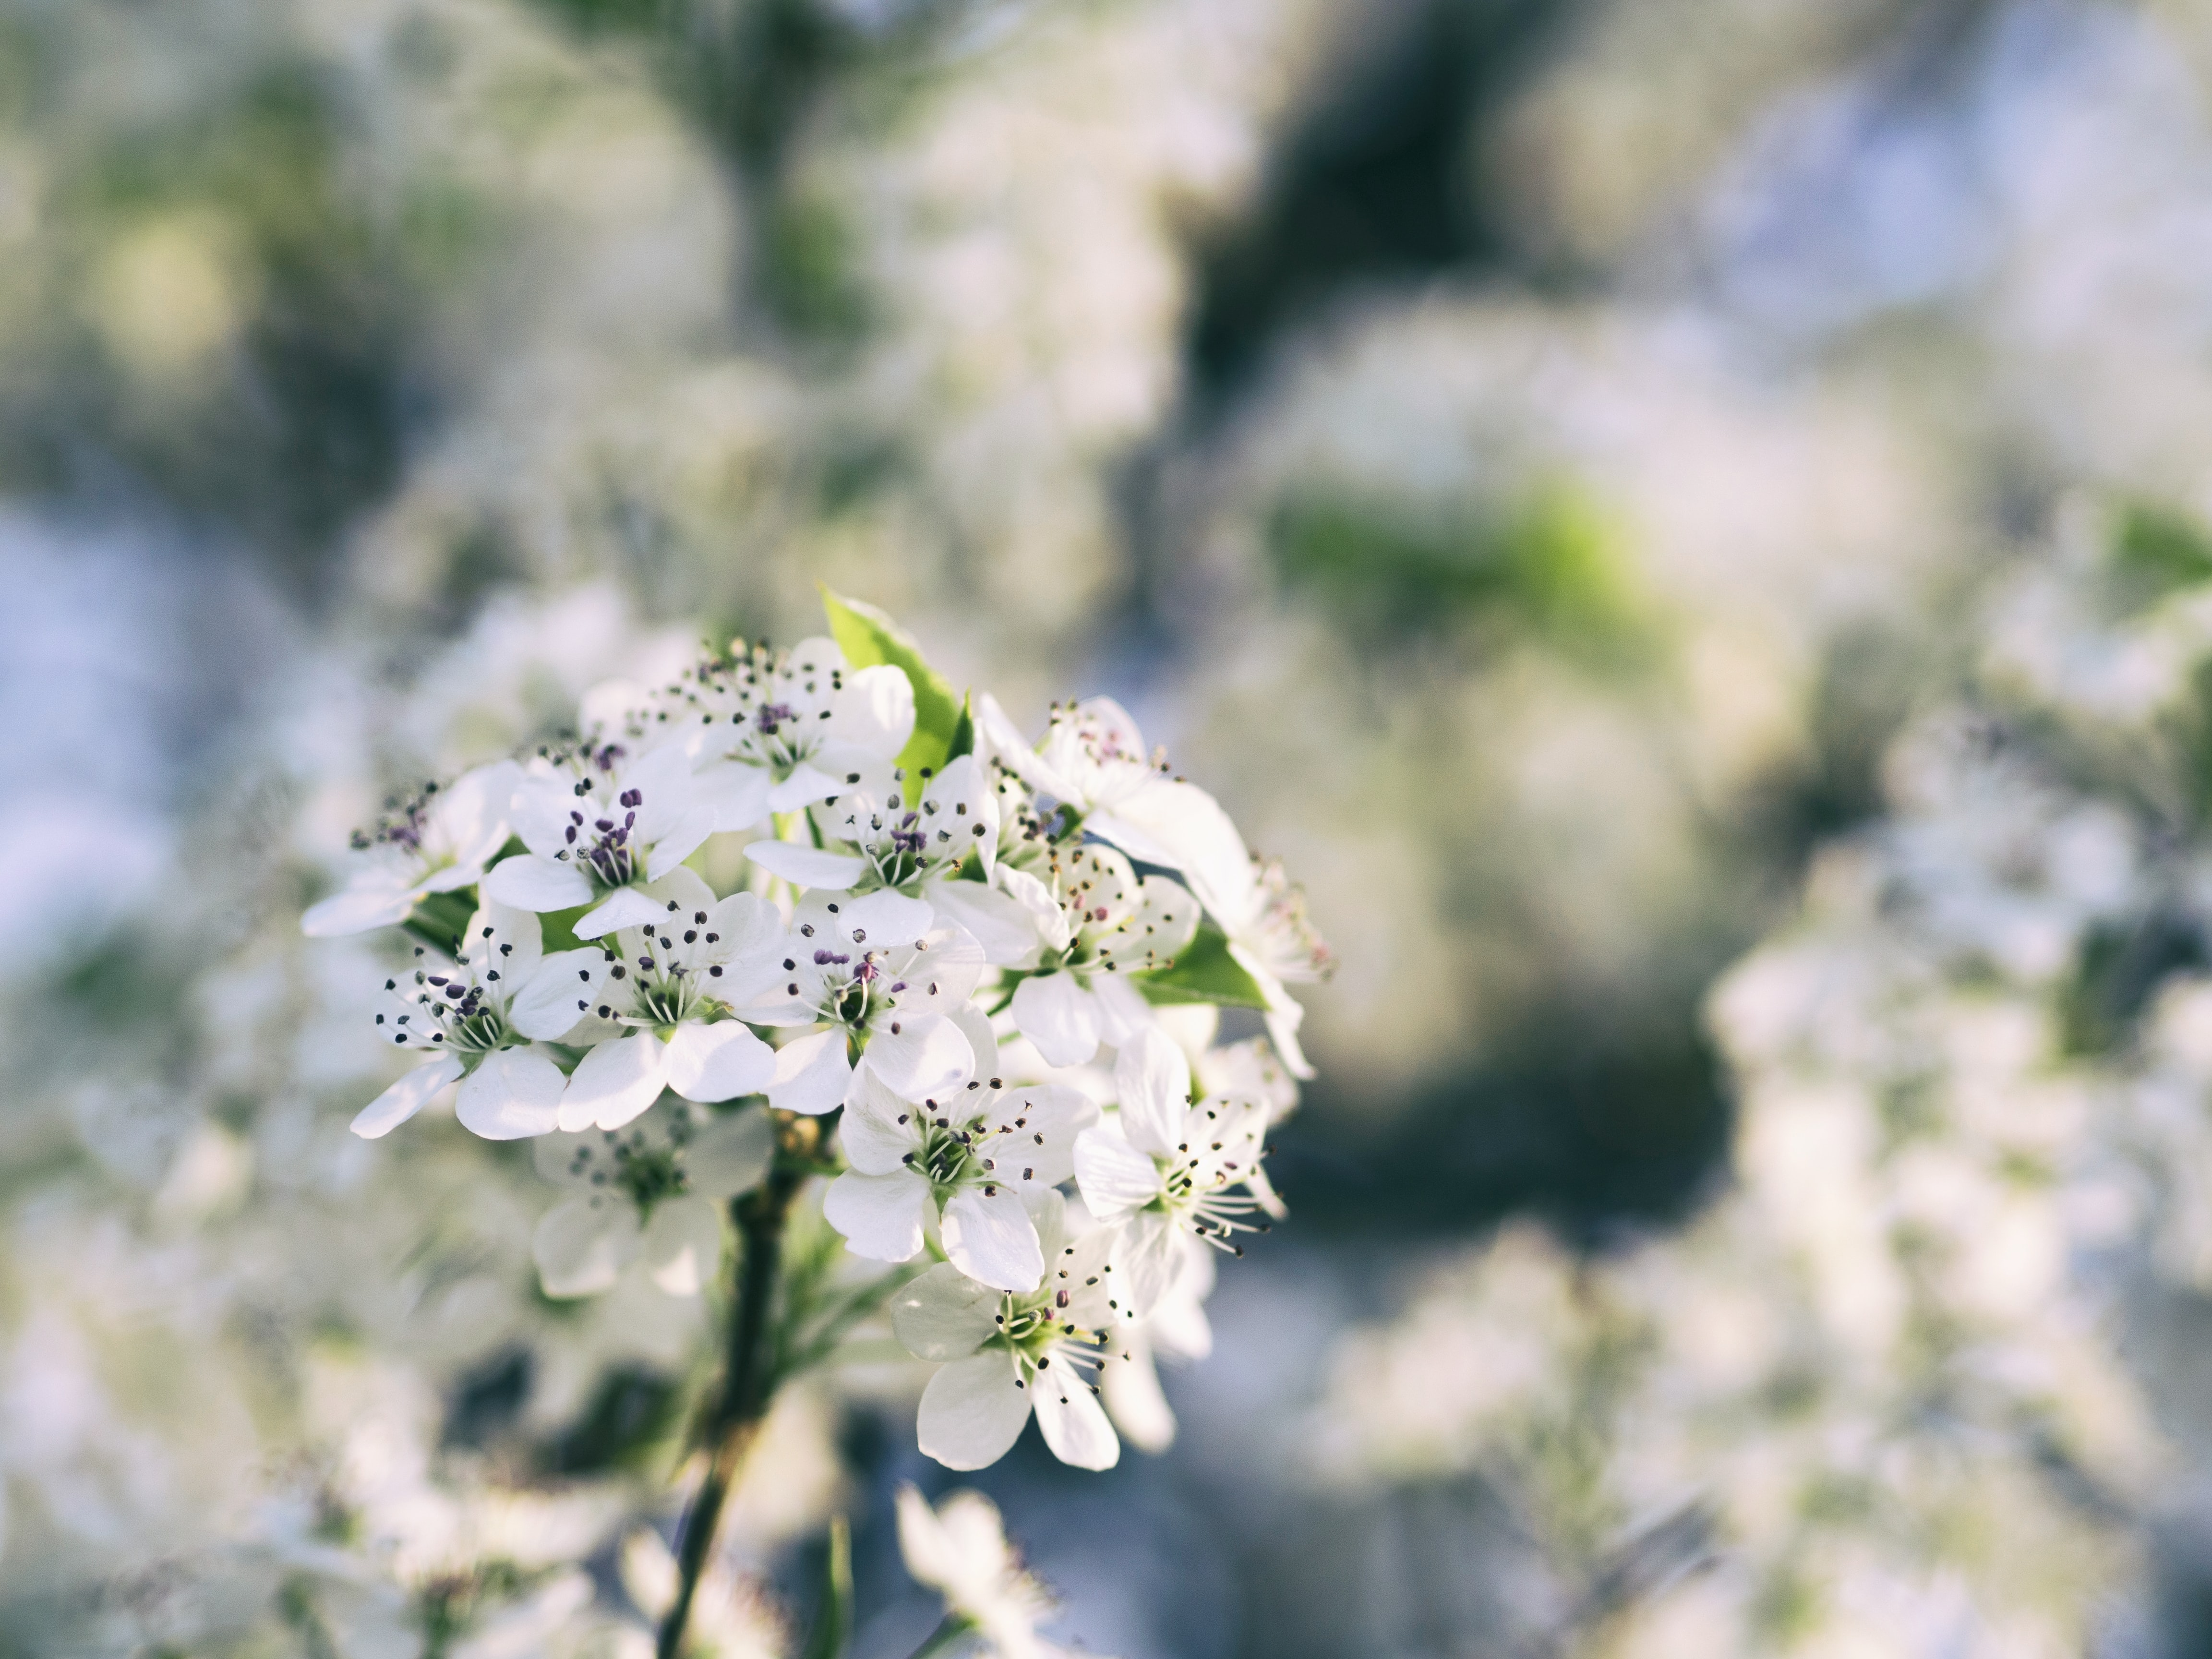 Close up of cherry blossom branch in Spring